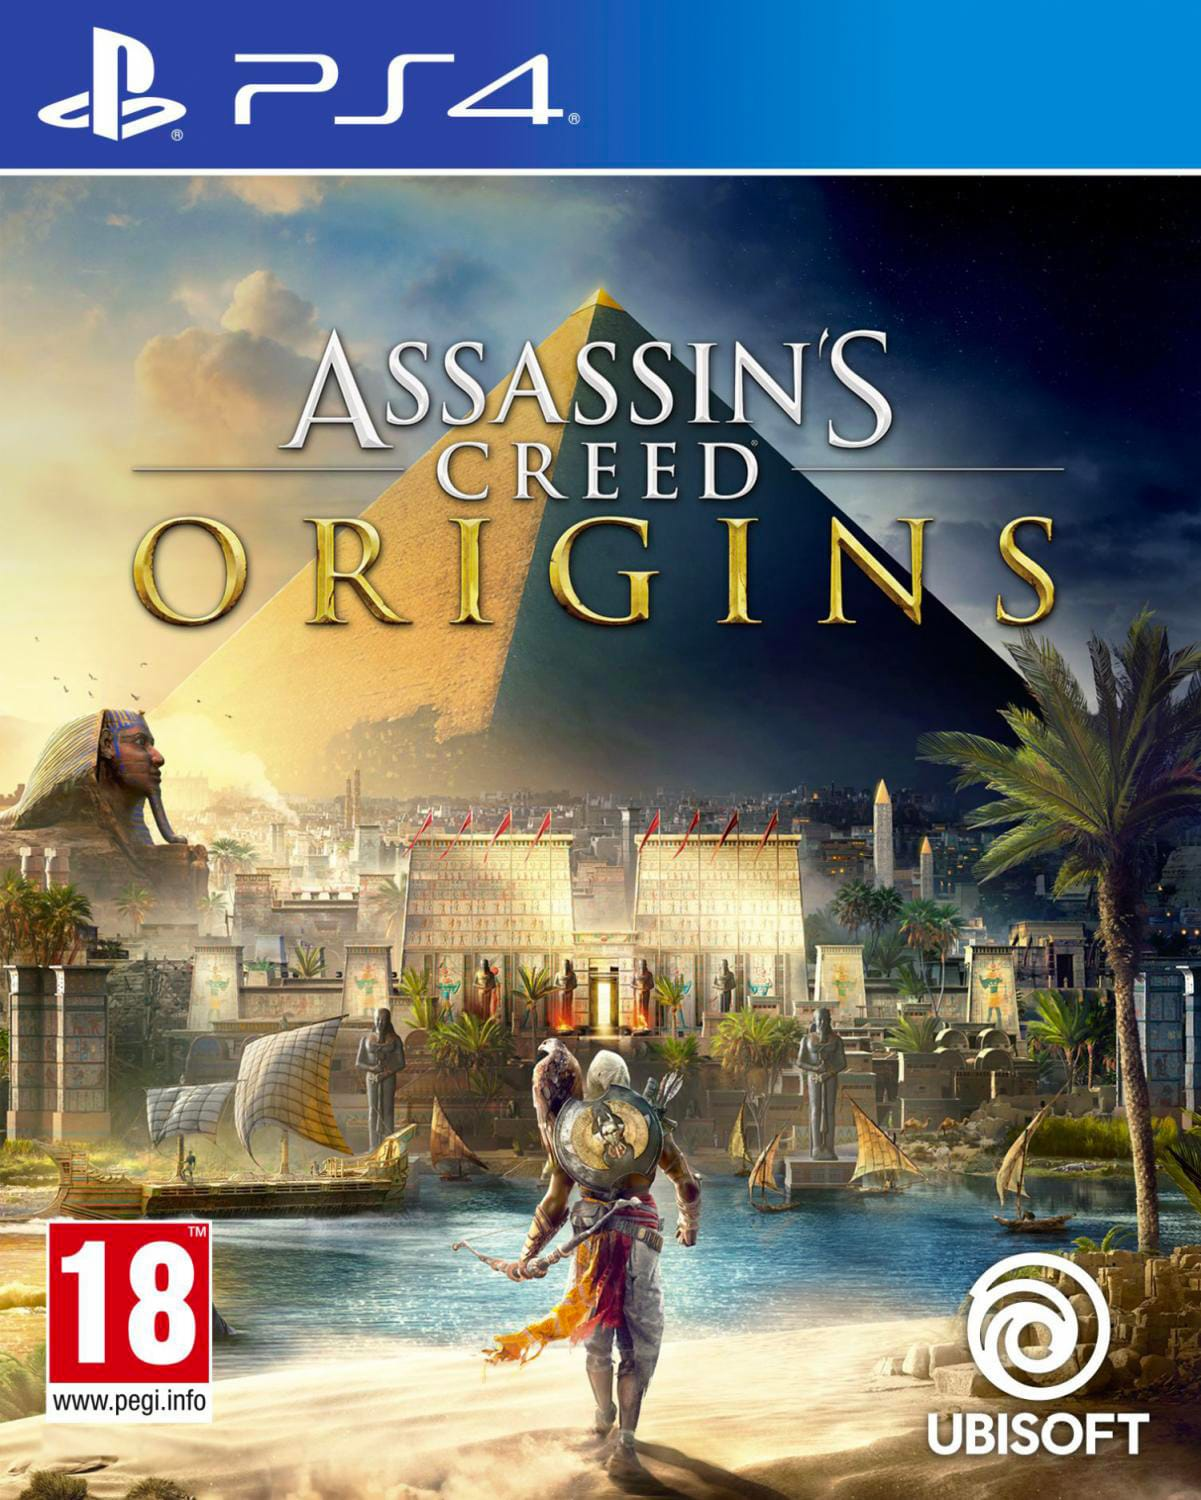 UBISOFT 95034 Videogioco per PS4 Assassins Creed Origins AzioneAvventura 18+